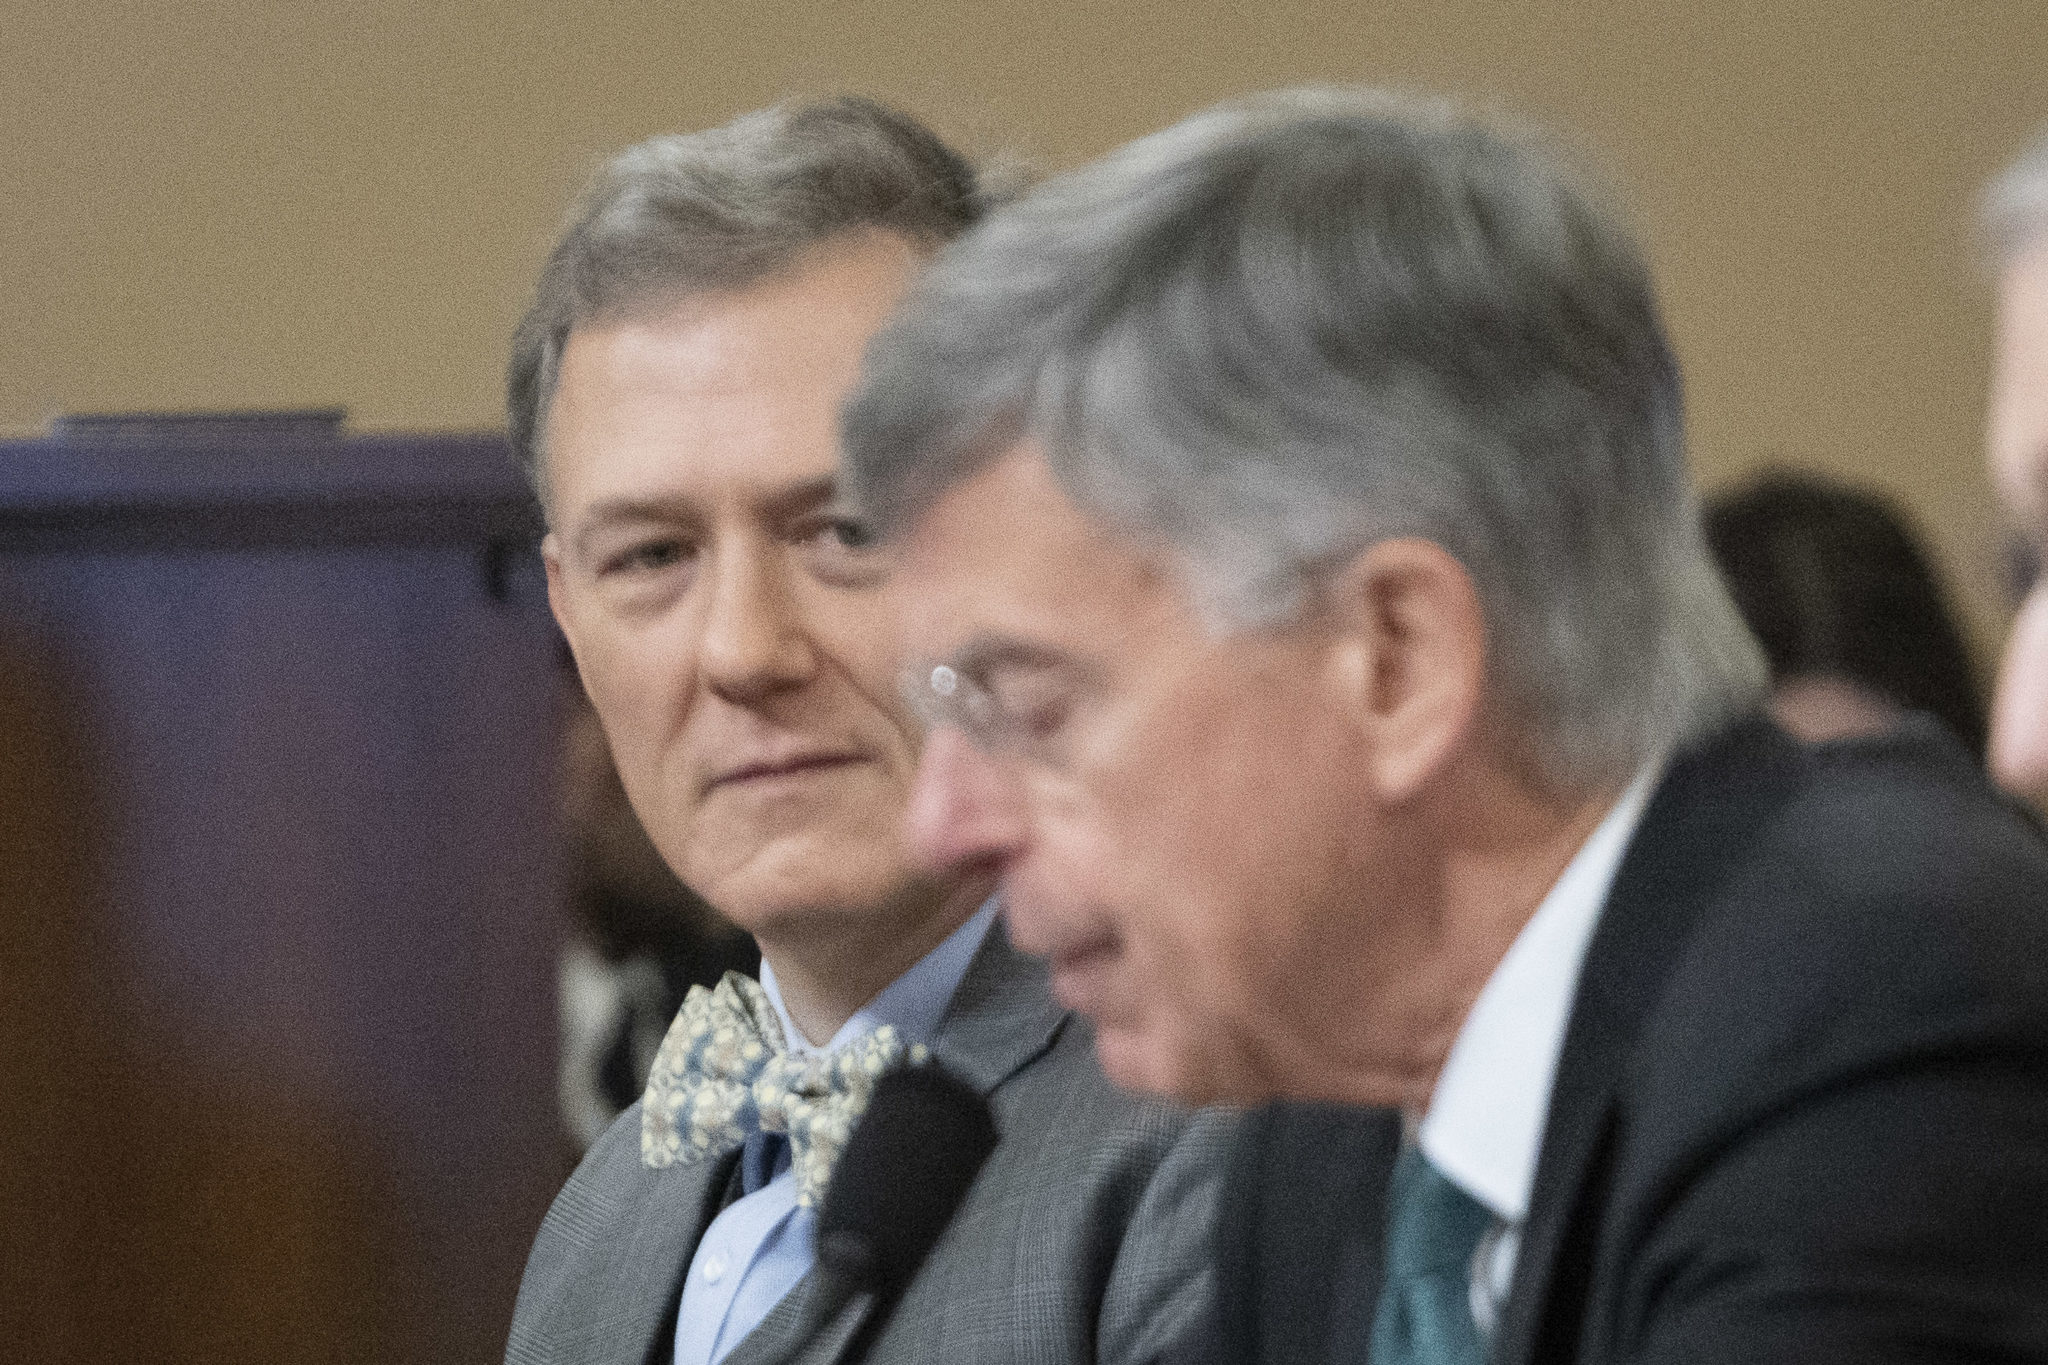 George Kent and William Taylor testify, Nov. 13, 2019